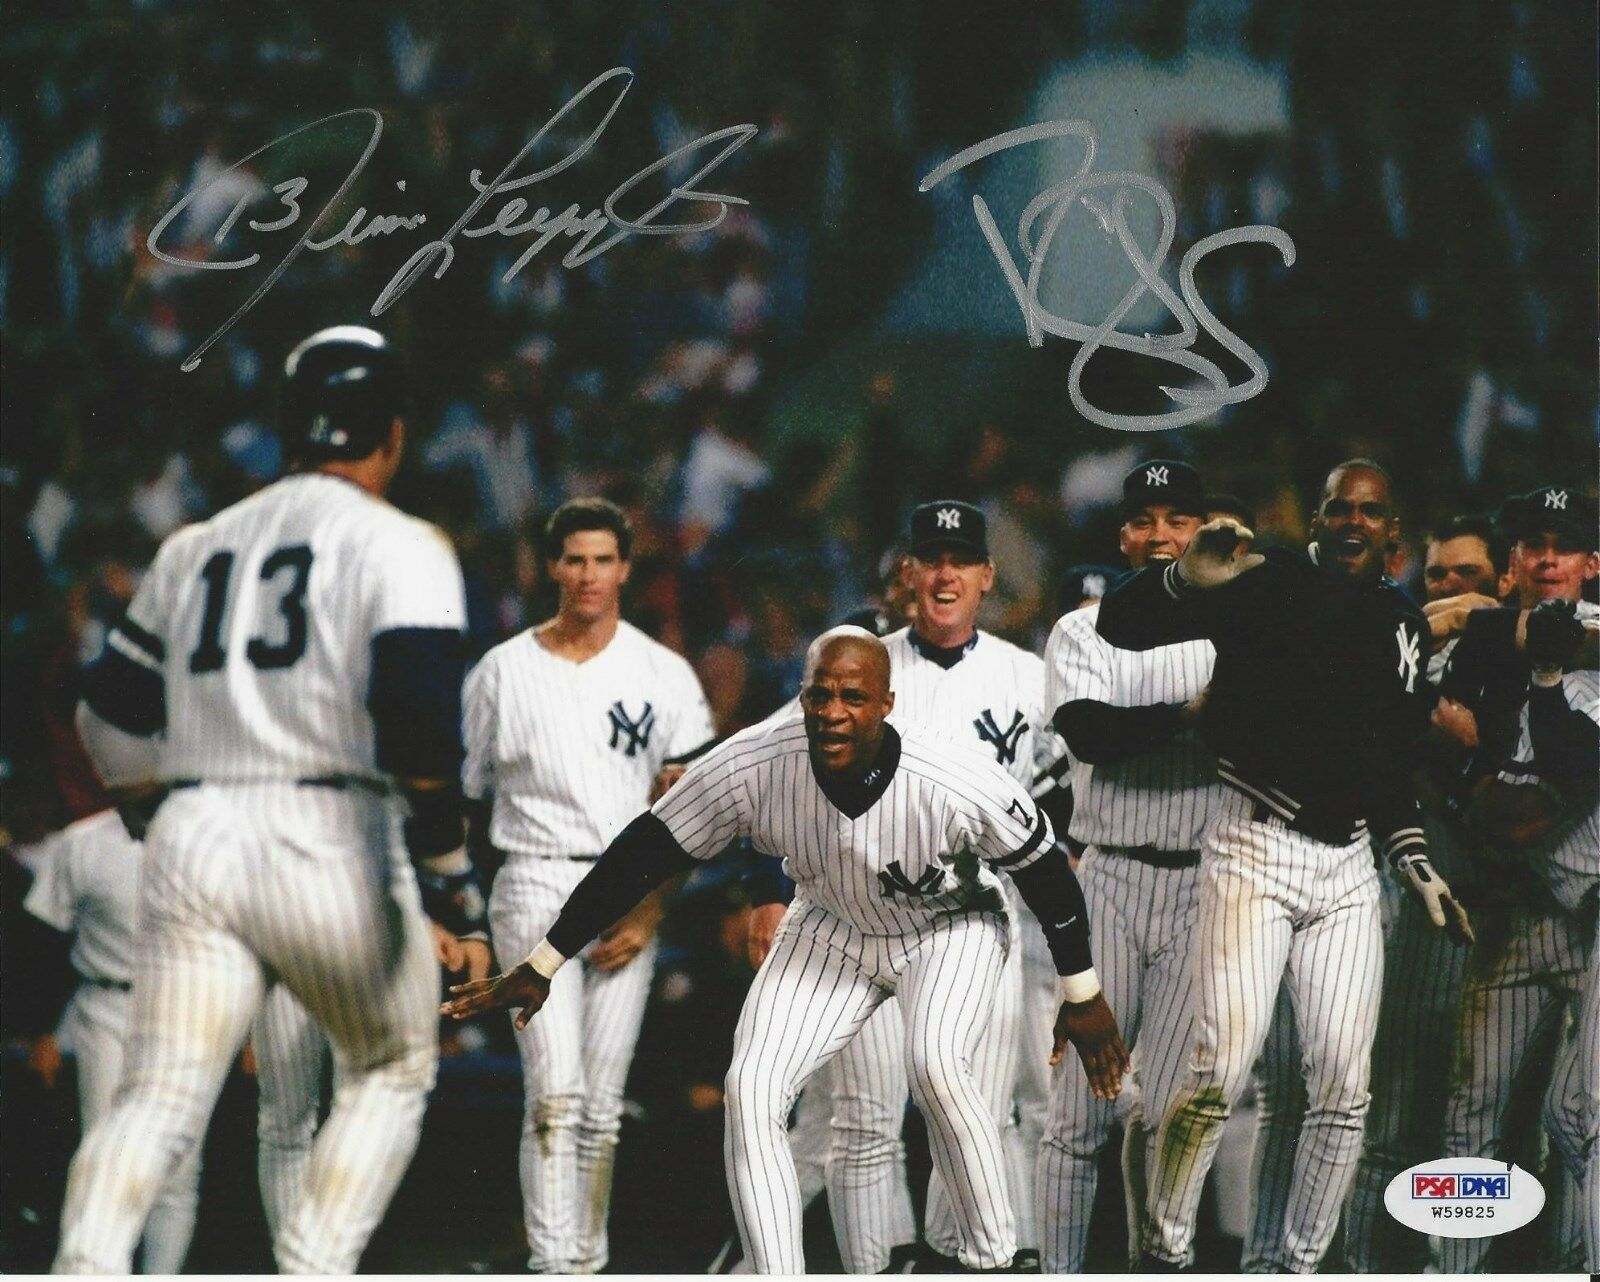 Jim Leyritz & Darryl Strawberry Dual signed 8x10 photo PSA/DNA #W59825